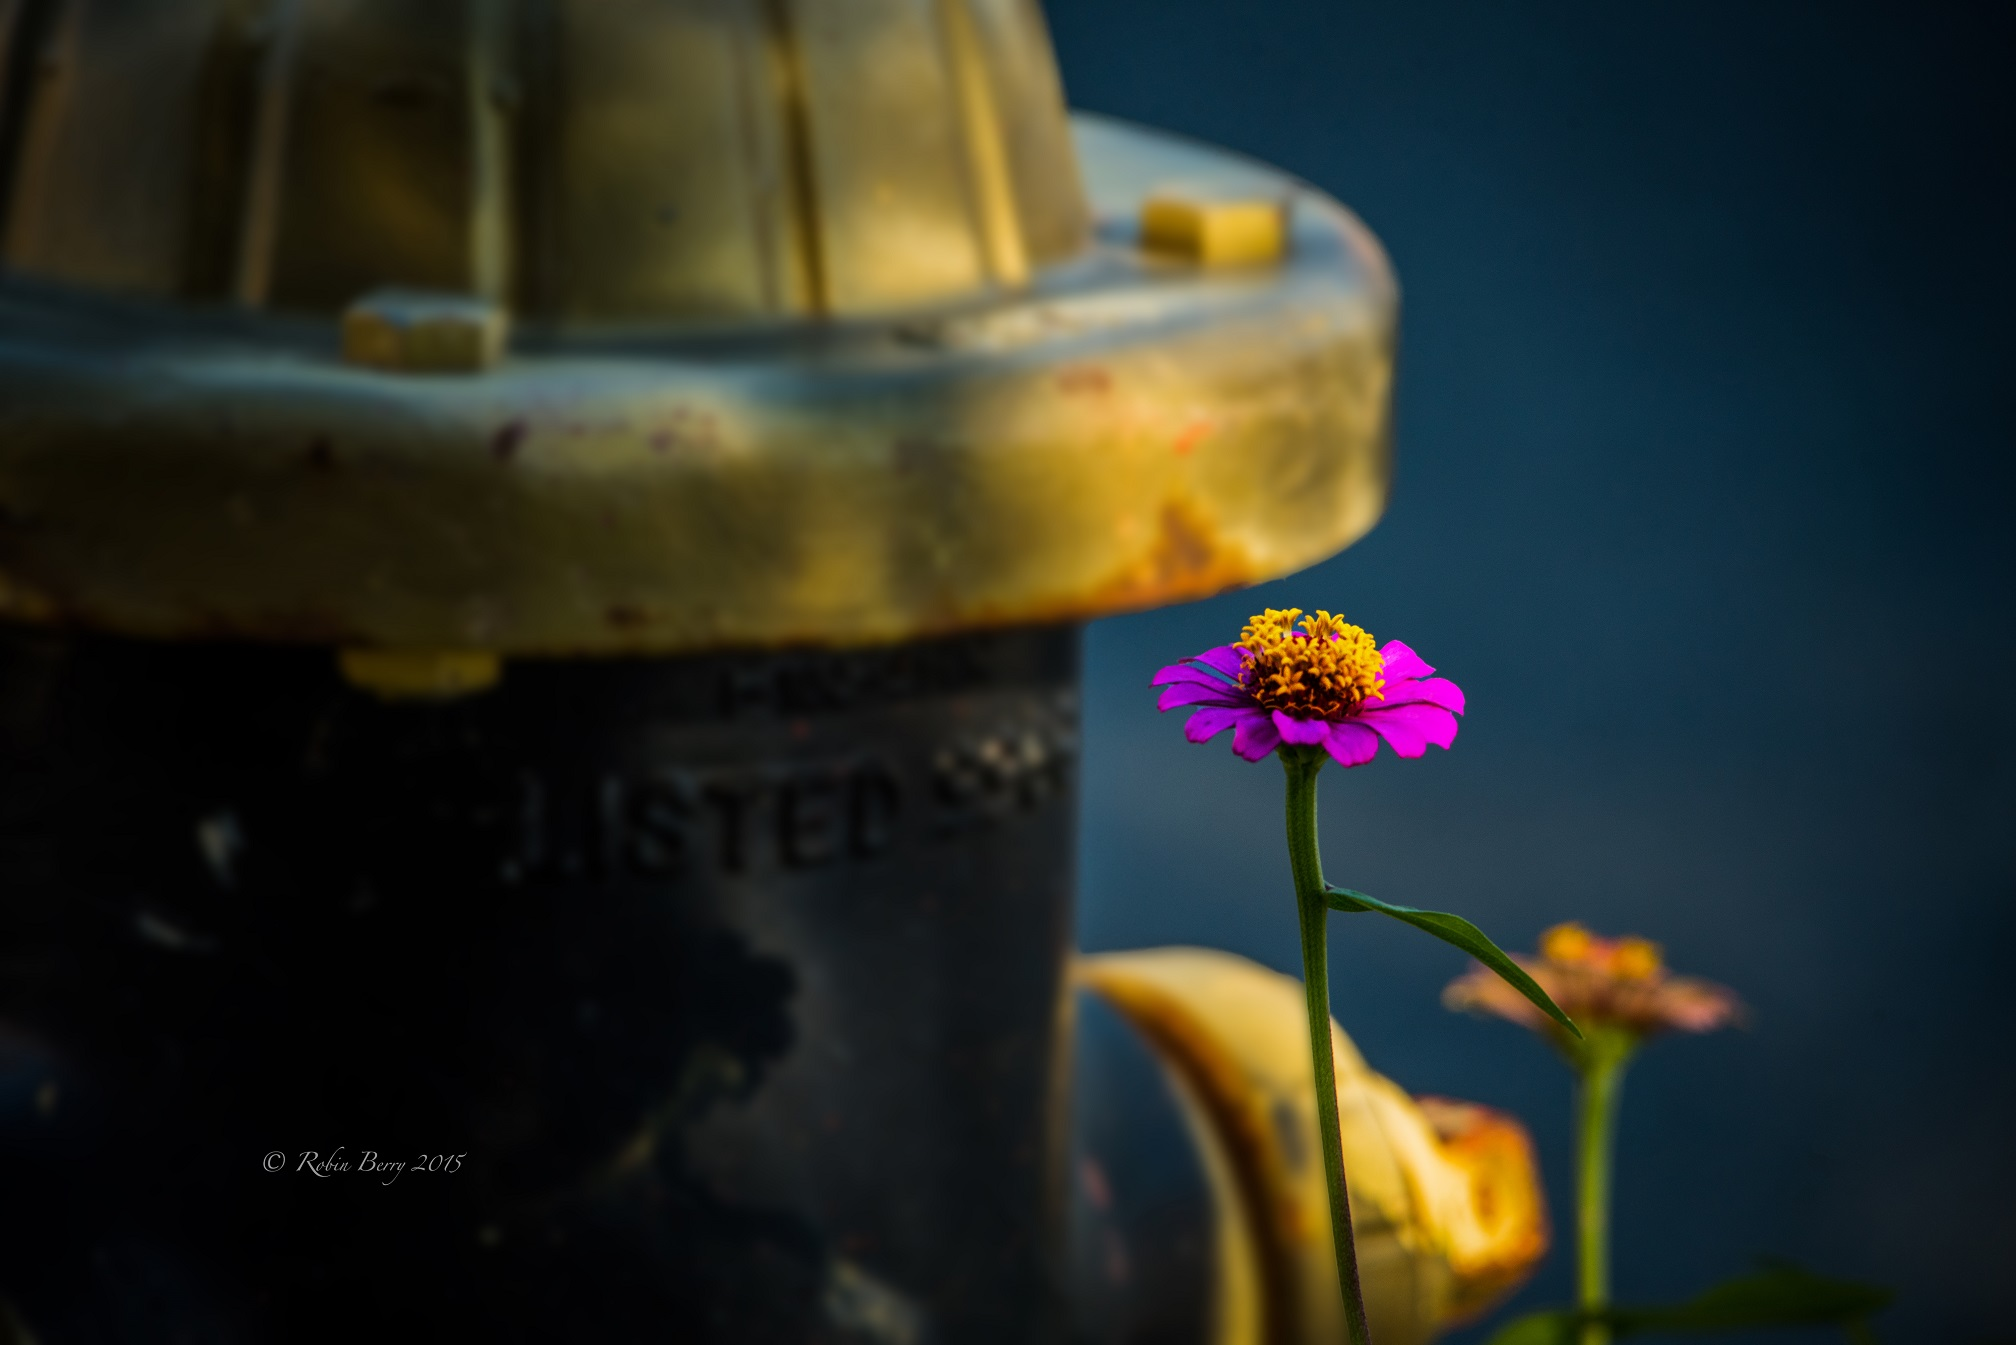 © Fire Hydrant & Flower. Photograph by Robin Berry